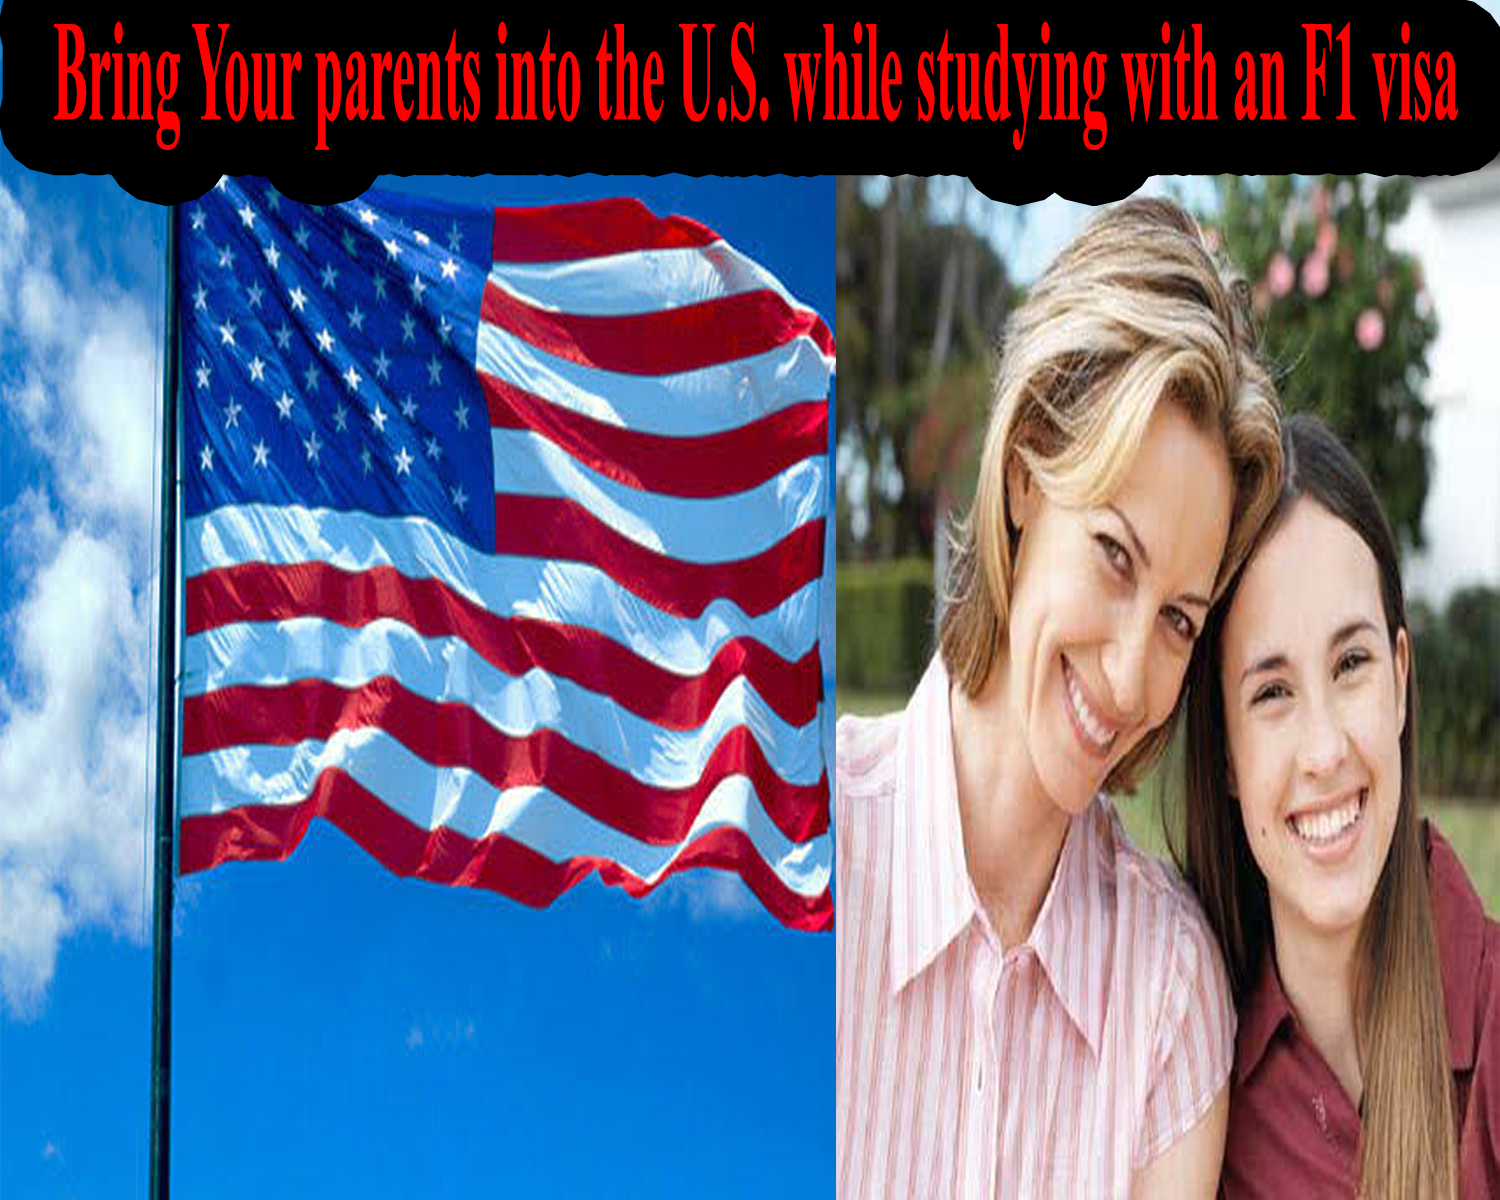 b2 visa for bringing parents to USA